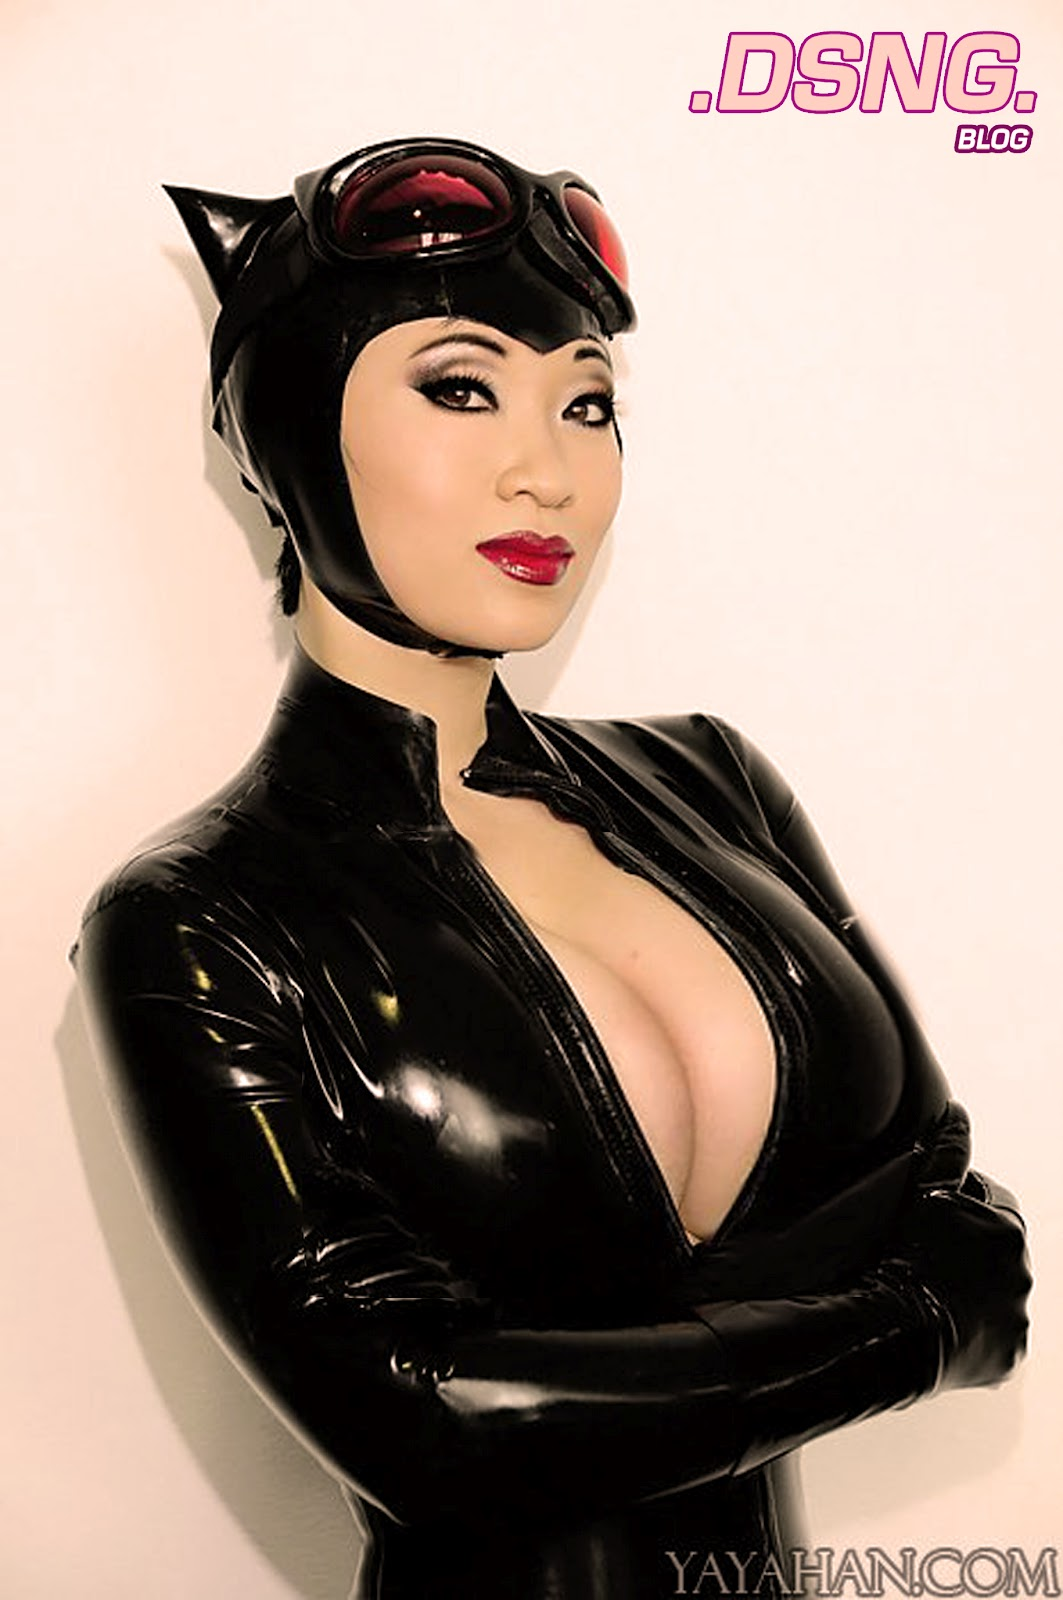 Tits and latex